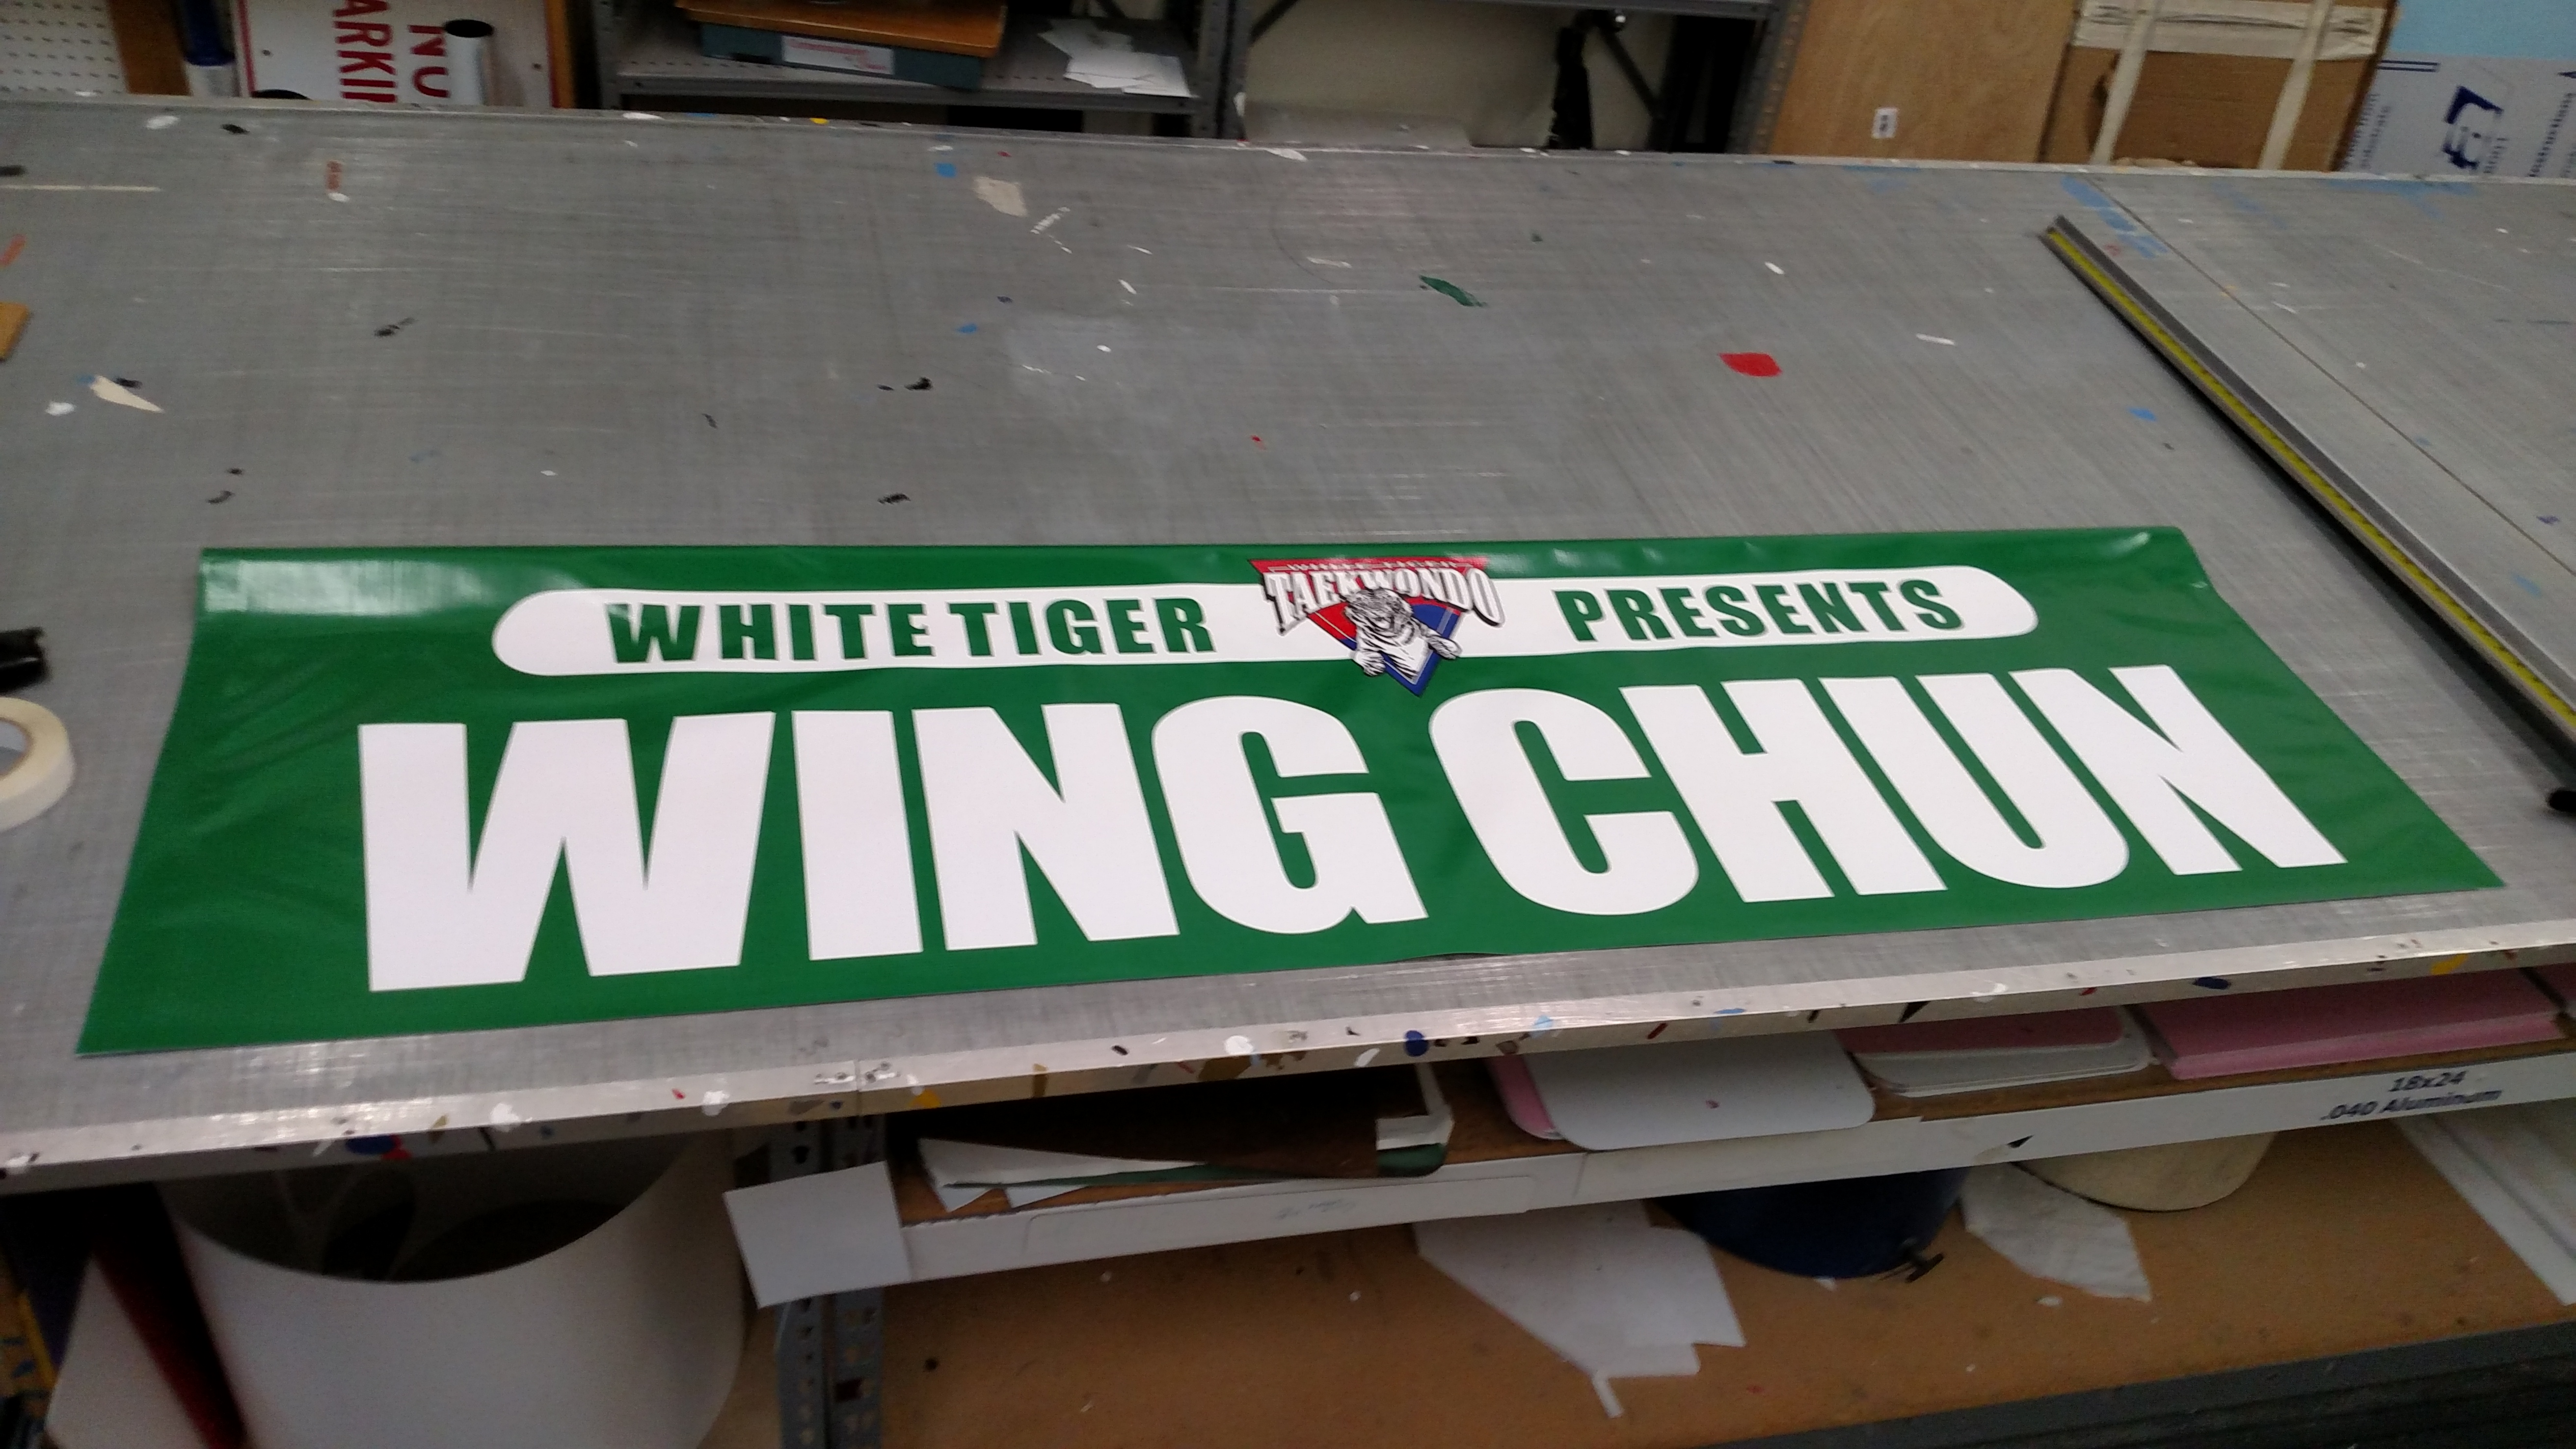 Custom Banners Indoor Banners Outdoor Banners Vinyl Banners In - Vinyl banners with pole pocketssignbanner printing